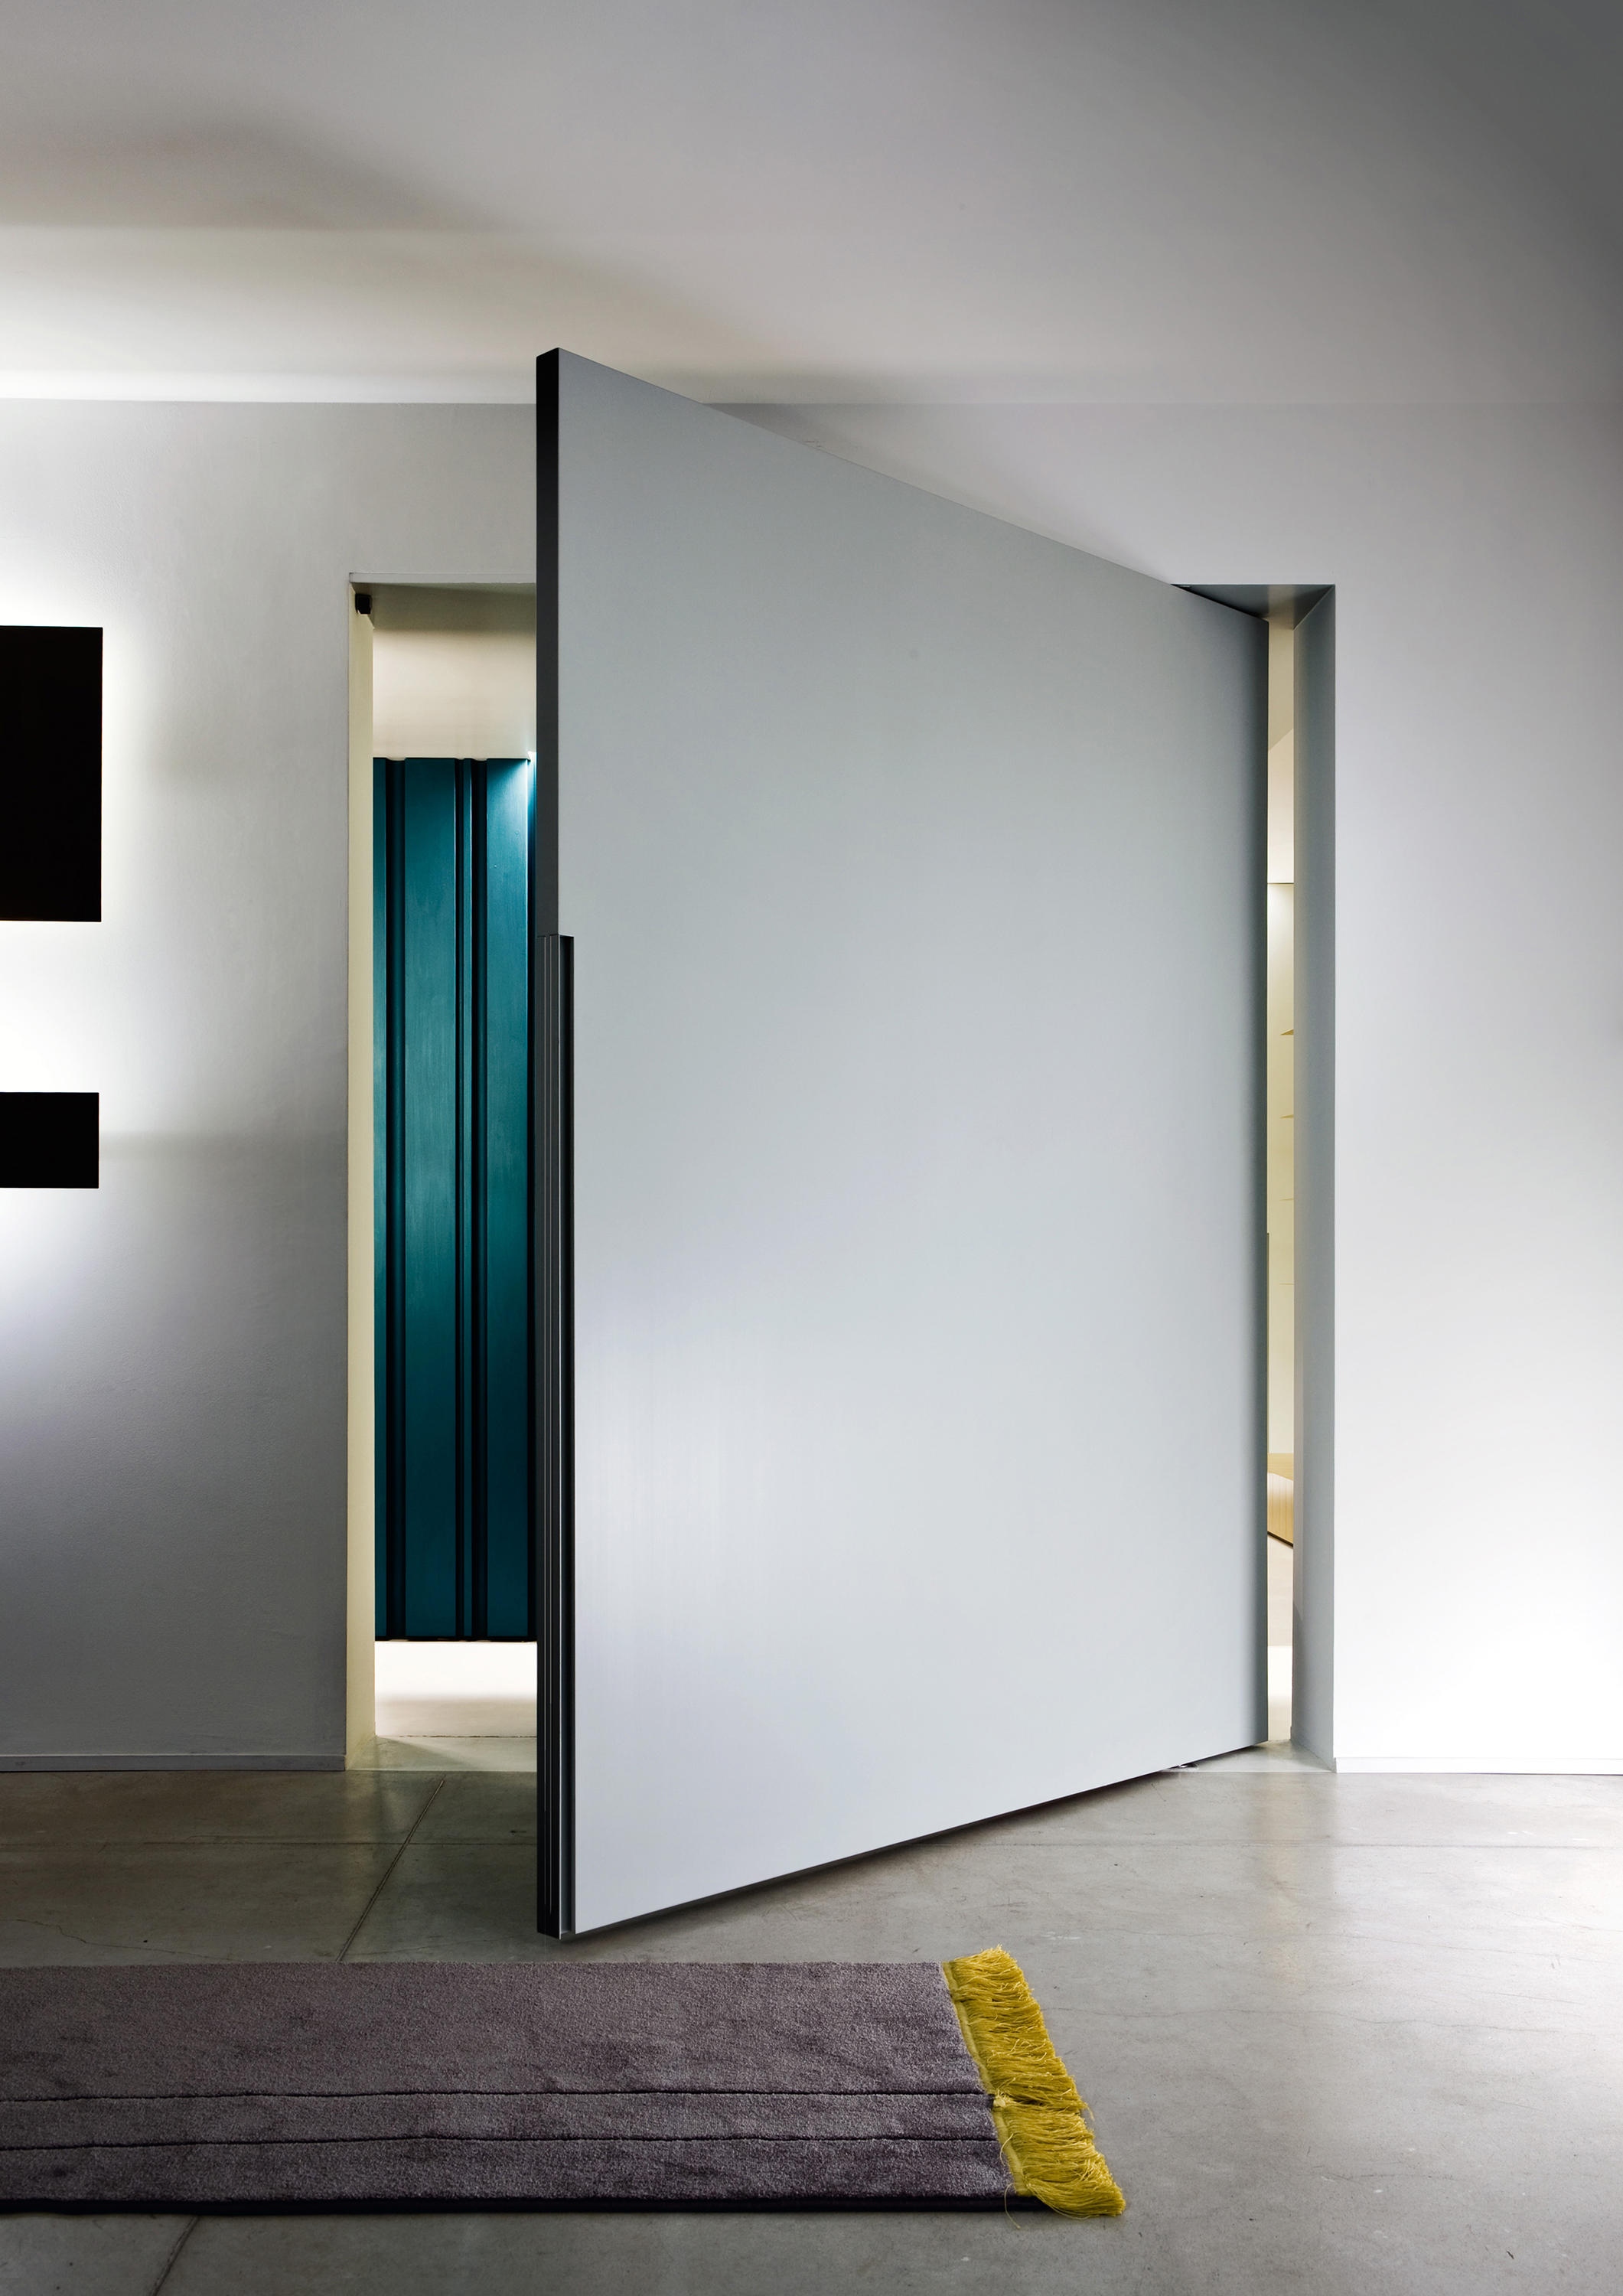 xpivot ic leadlight melbourne pivot doors door pagespeed tpzy armadale